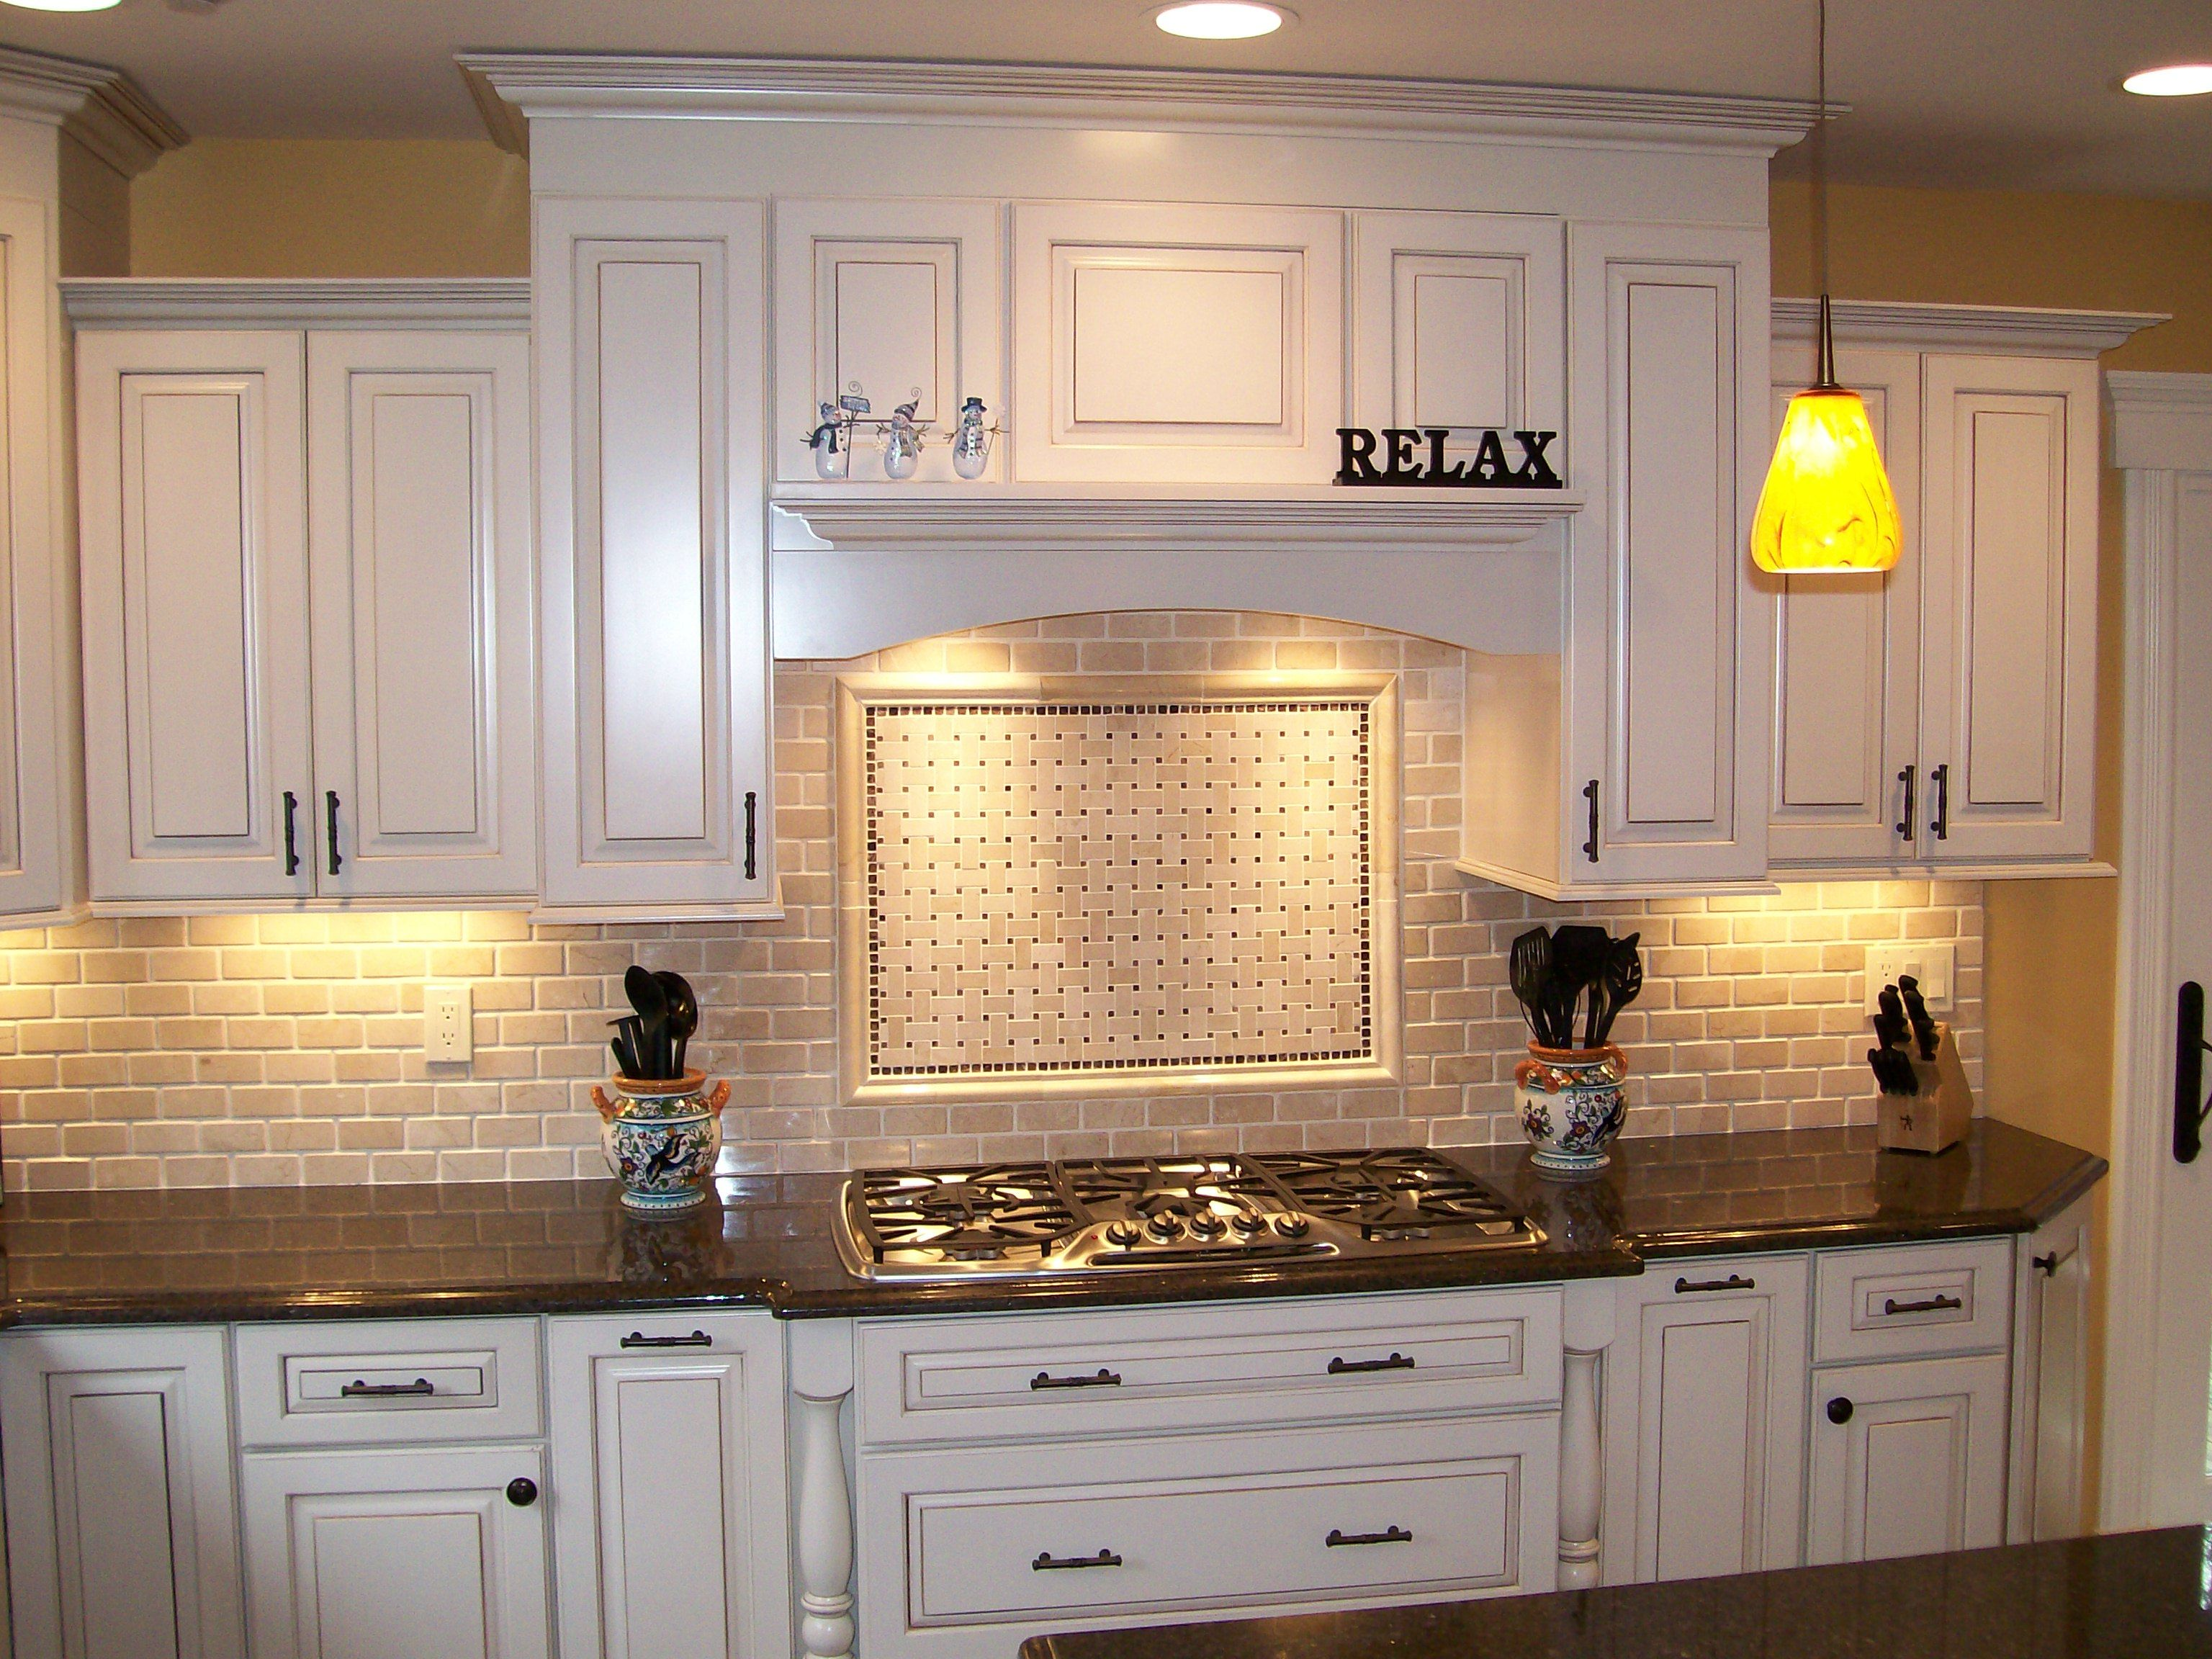 Pin By Christy Duke On Kitchen Swag In 2019 Backsplash For White